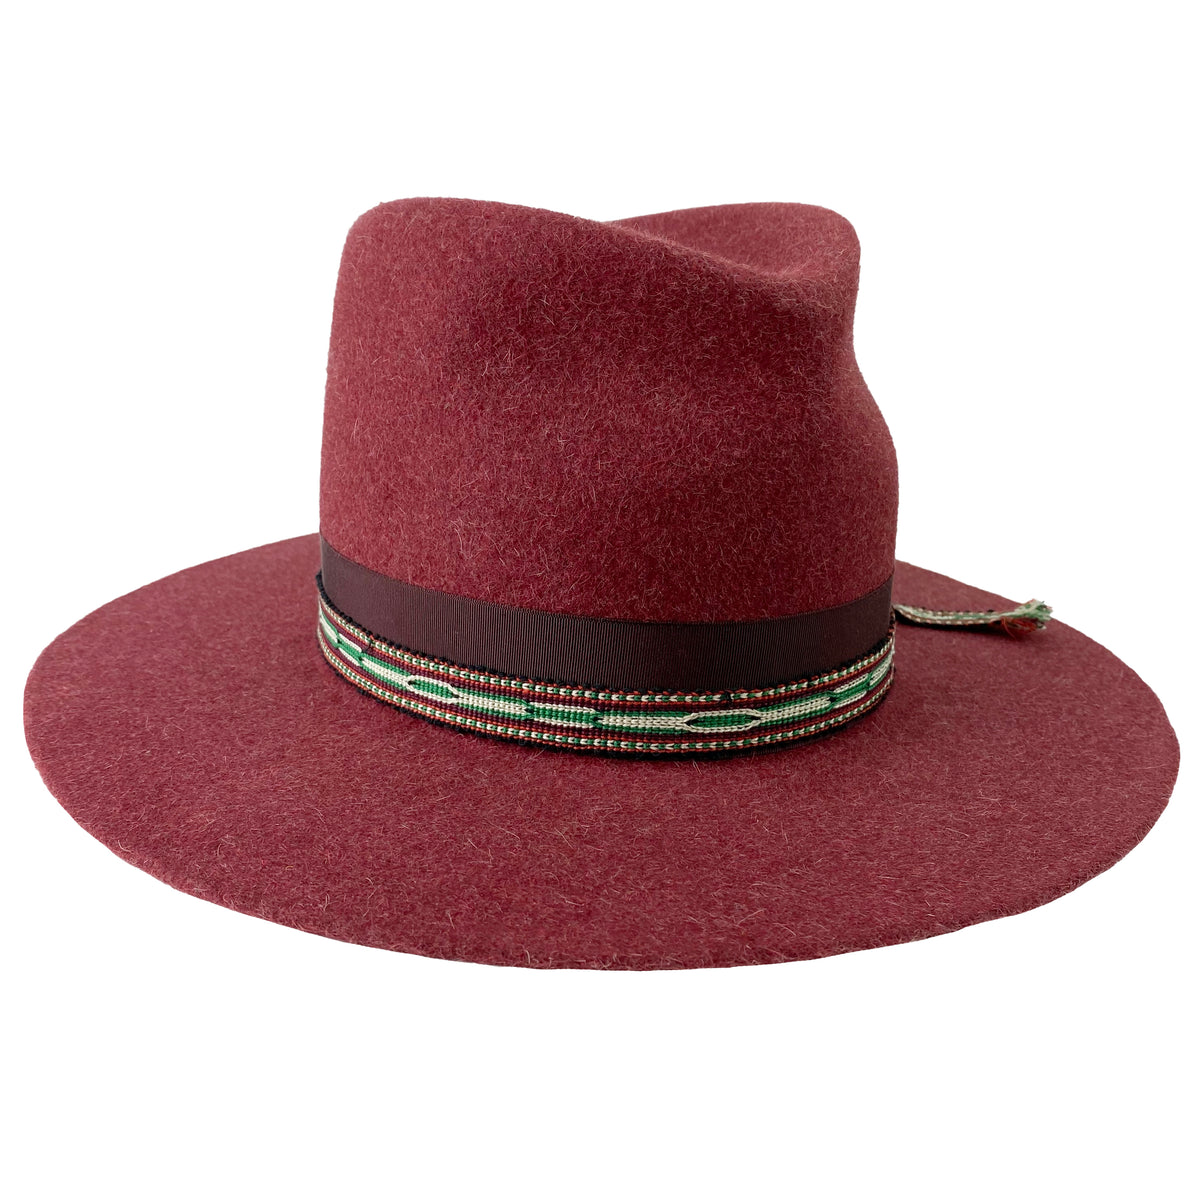 custom fedora made by hatWRKS